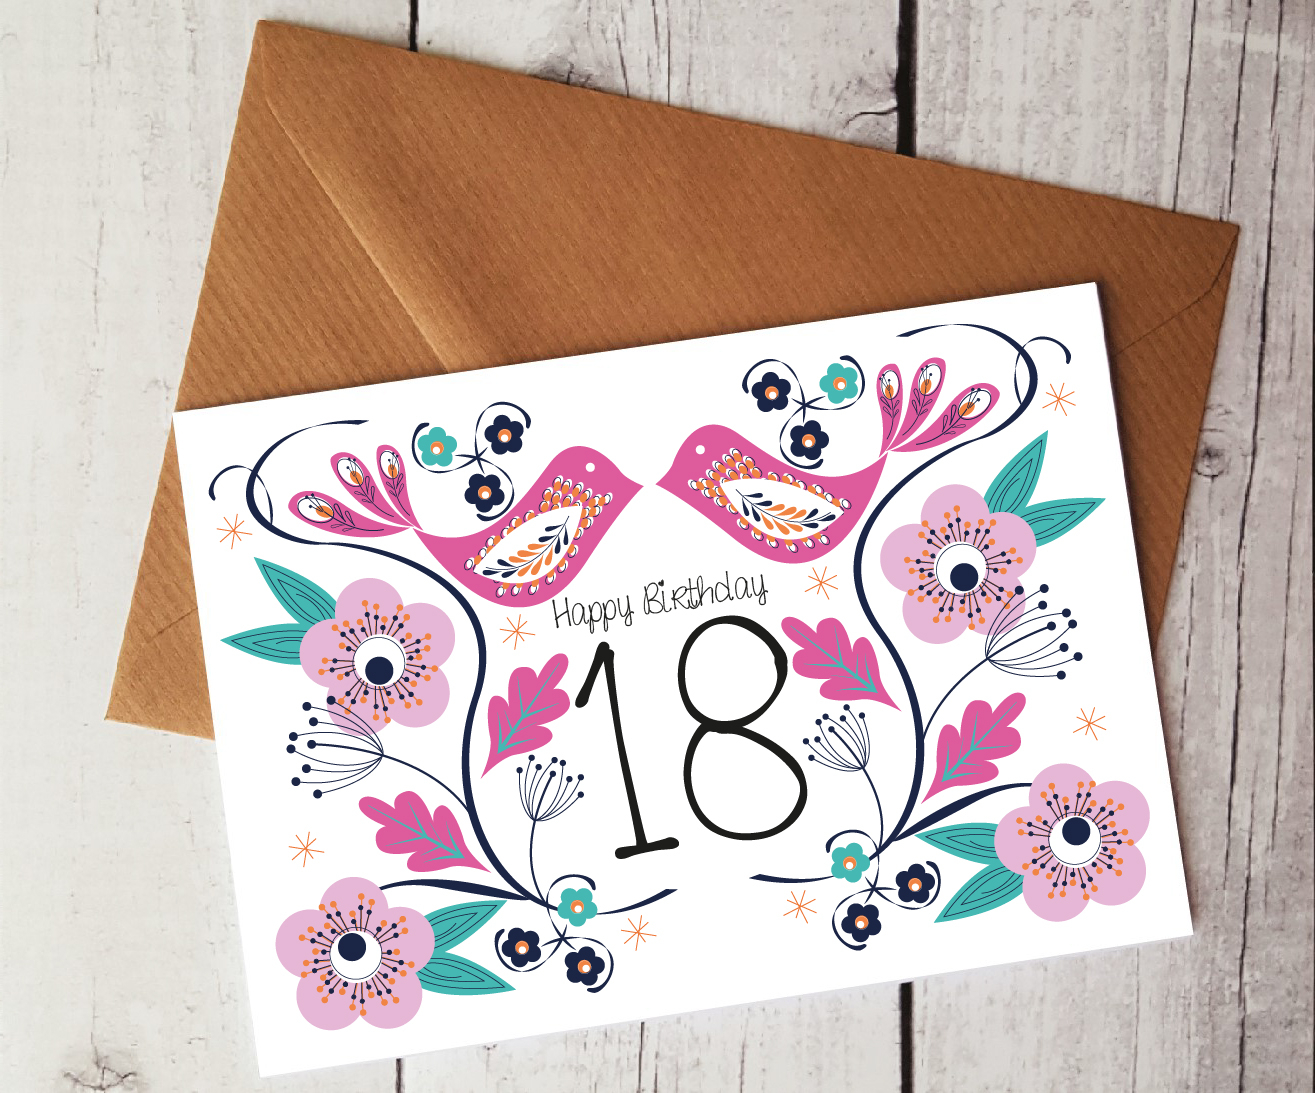 Cute Card Ideas For Birthday 18th Birthday Card